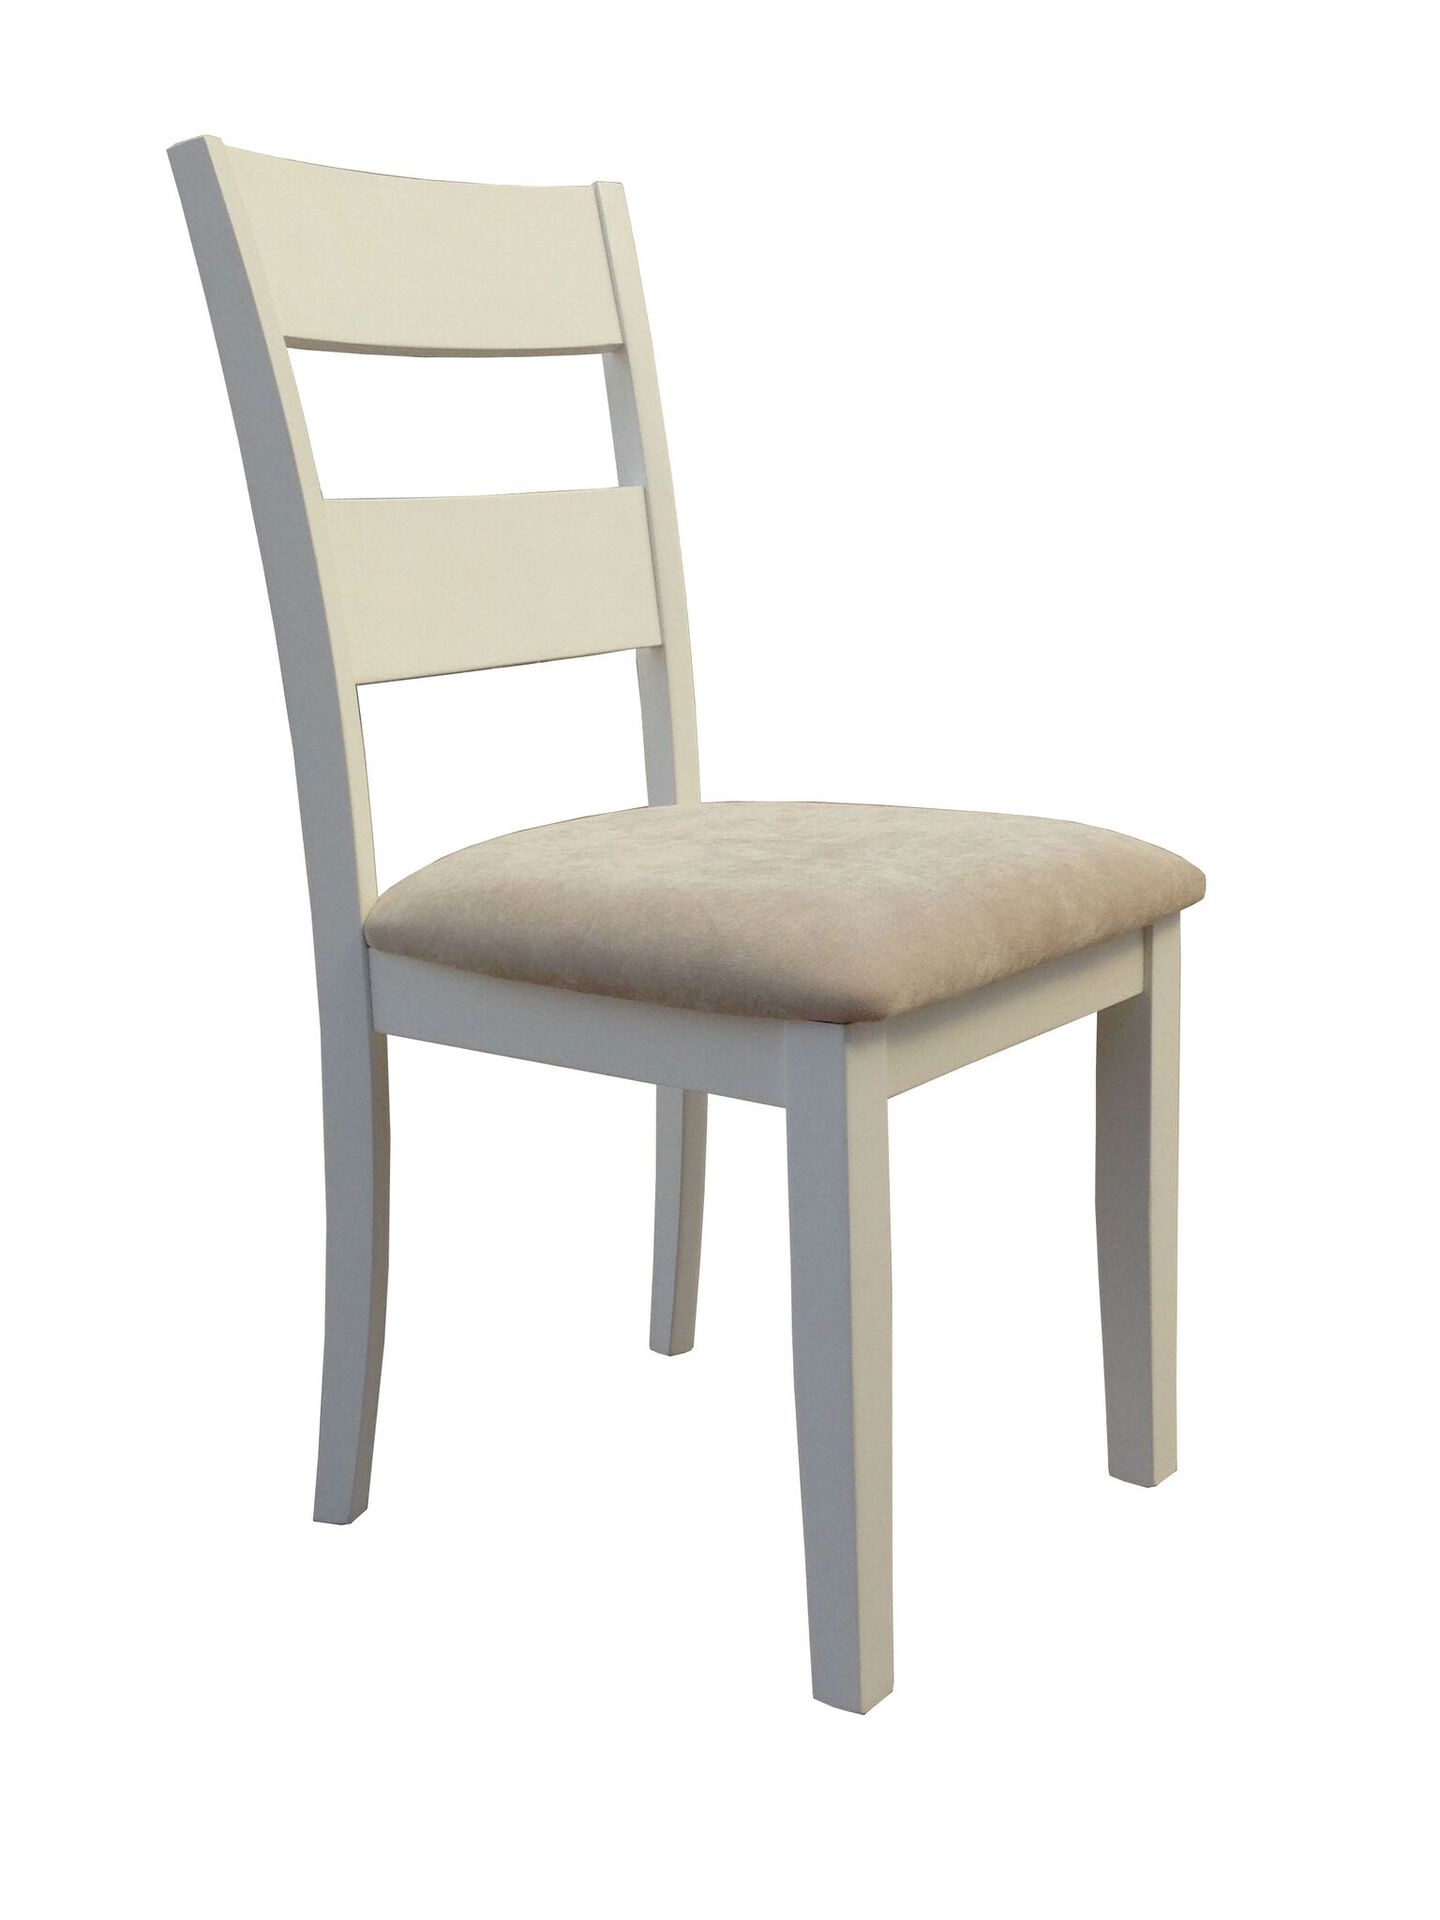 White Upholstered Chair Chair Upholstered Table Dining Dining Set Sets Table